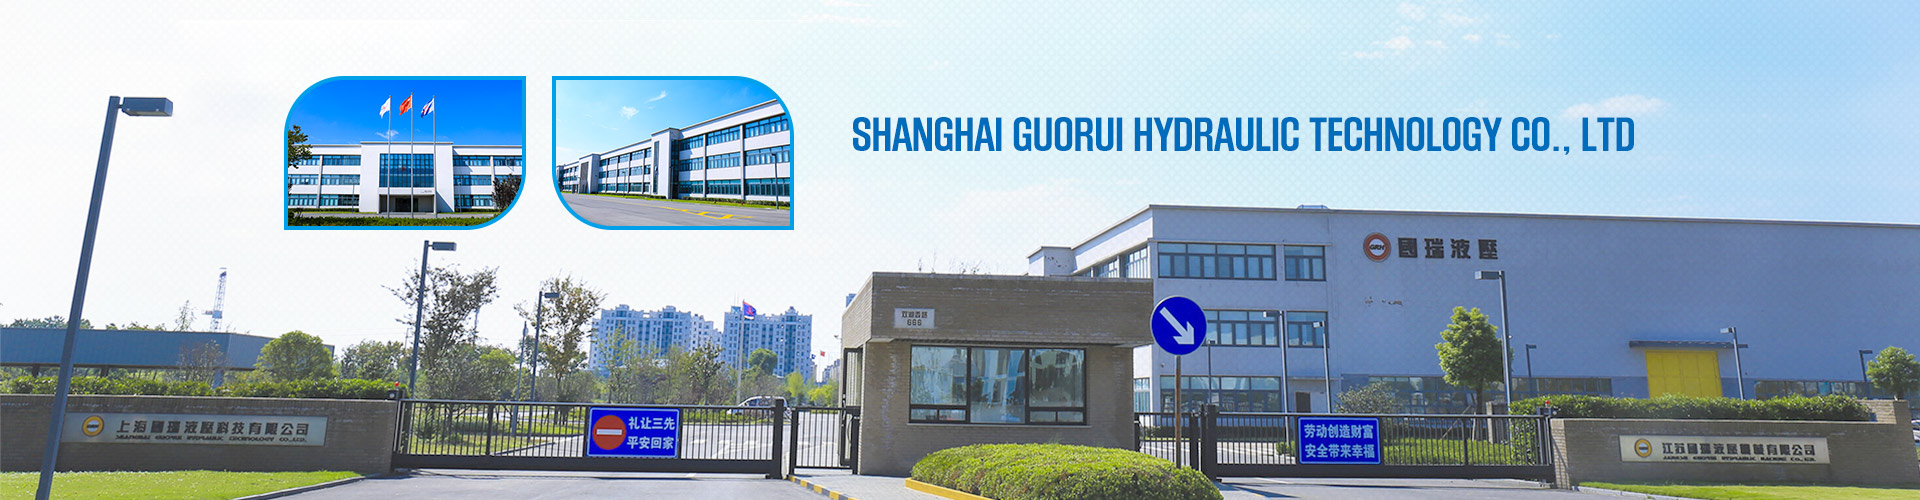 Shanghai Guorui haeteroliki Technology Co., Ltd